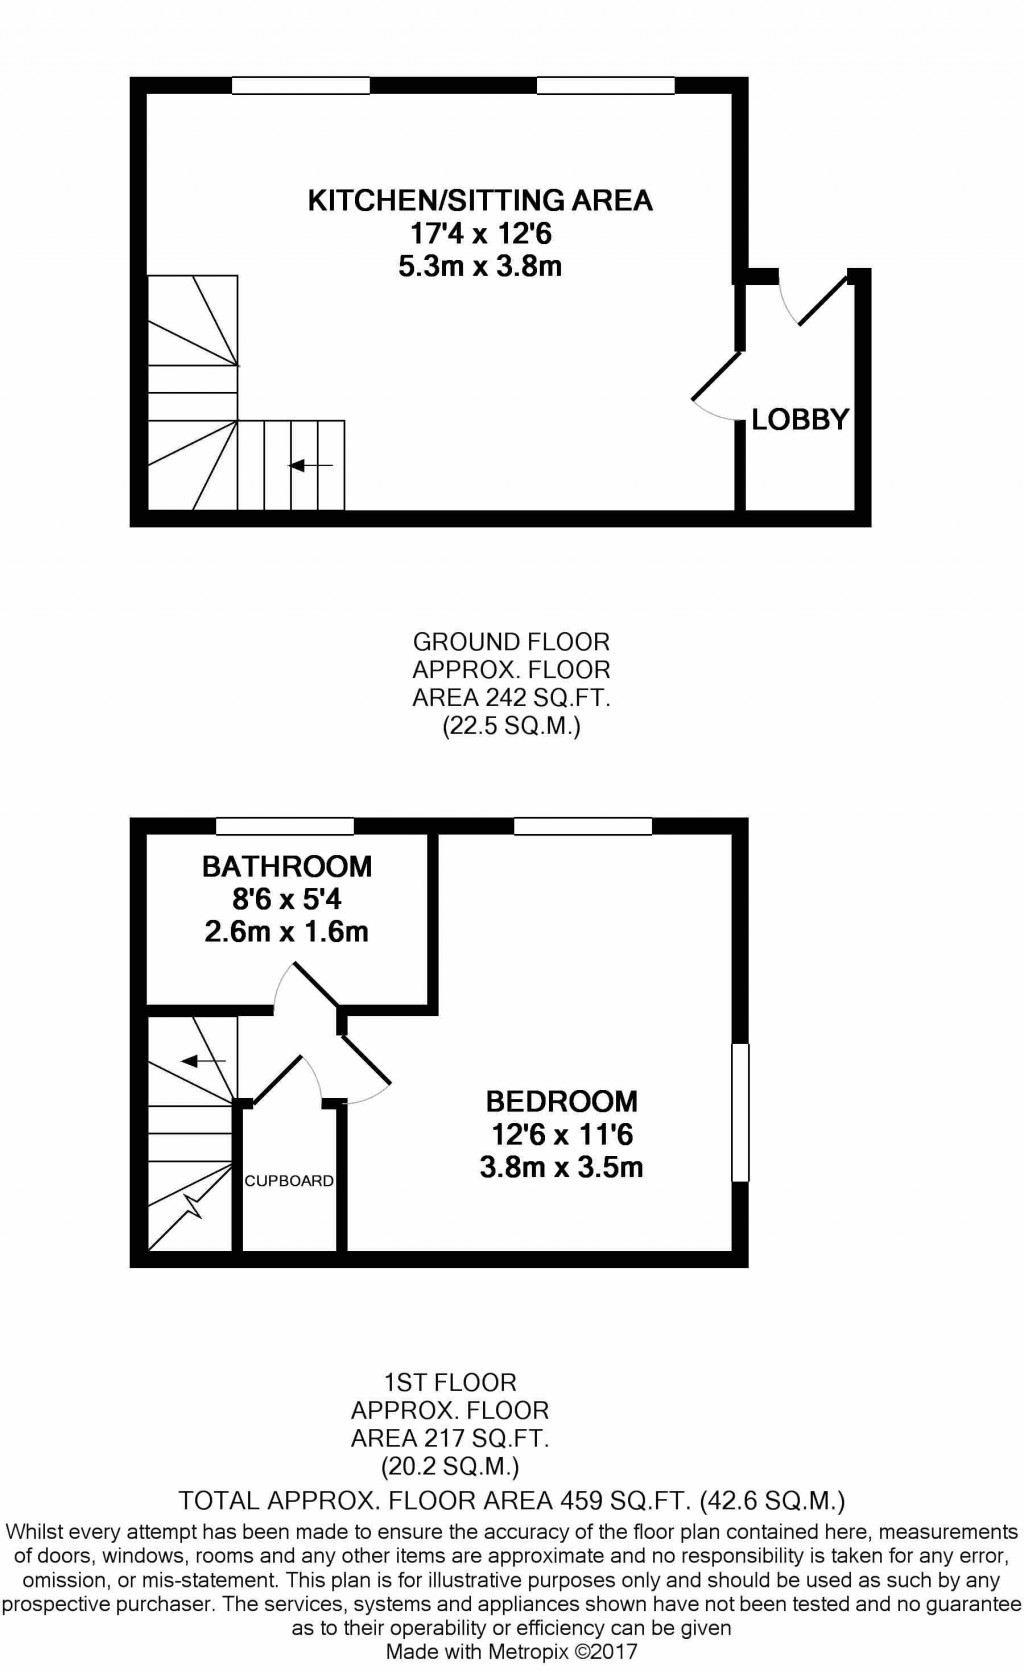 1 bedroom end terraced house SSTC in Ipswich - floorplan 1